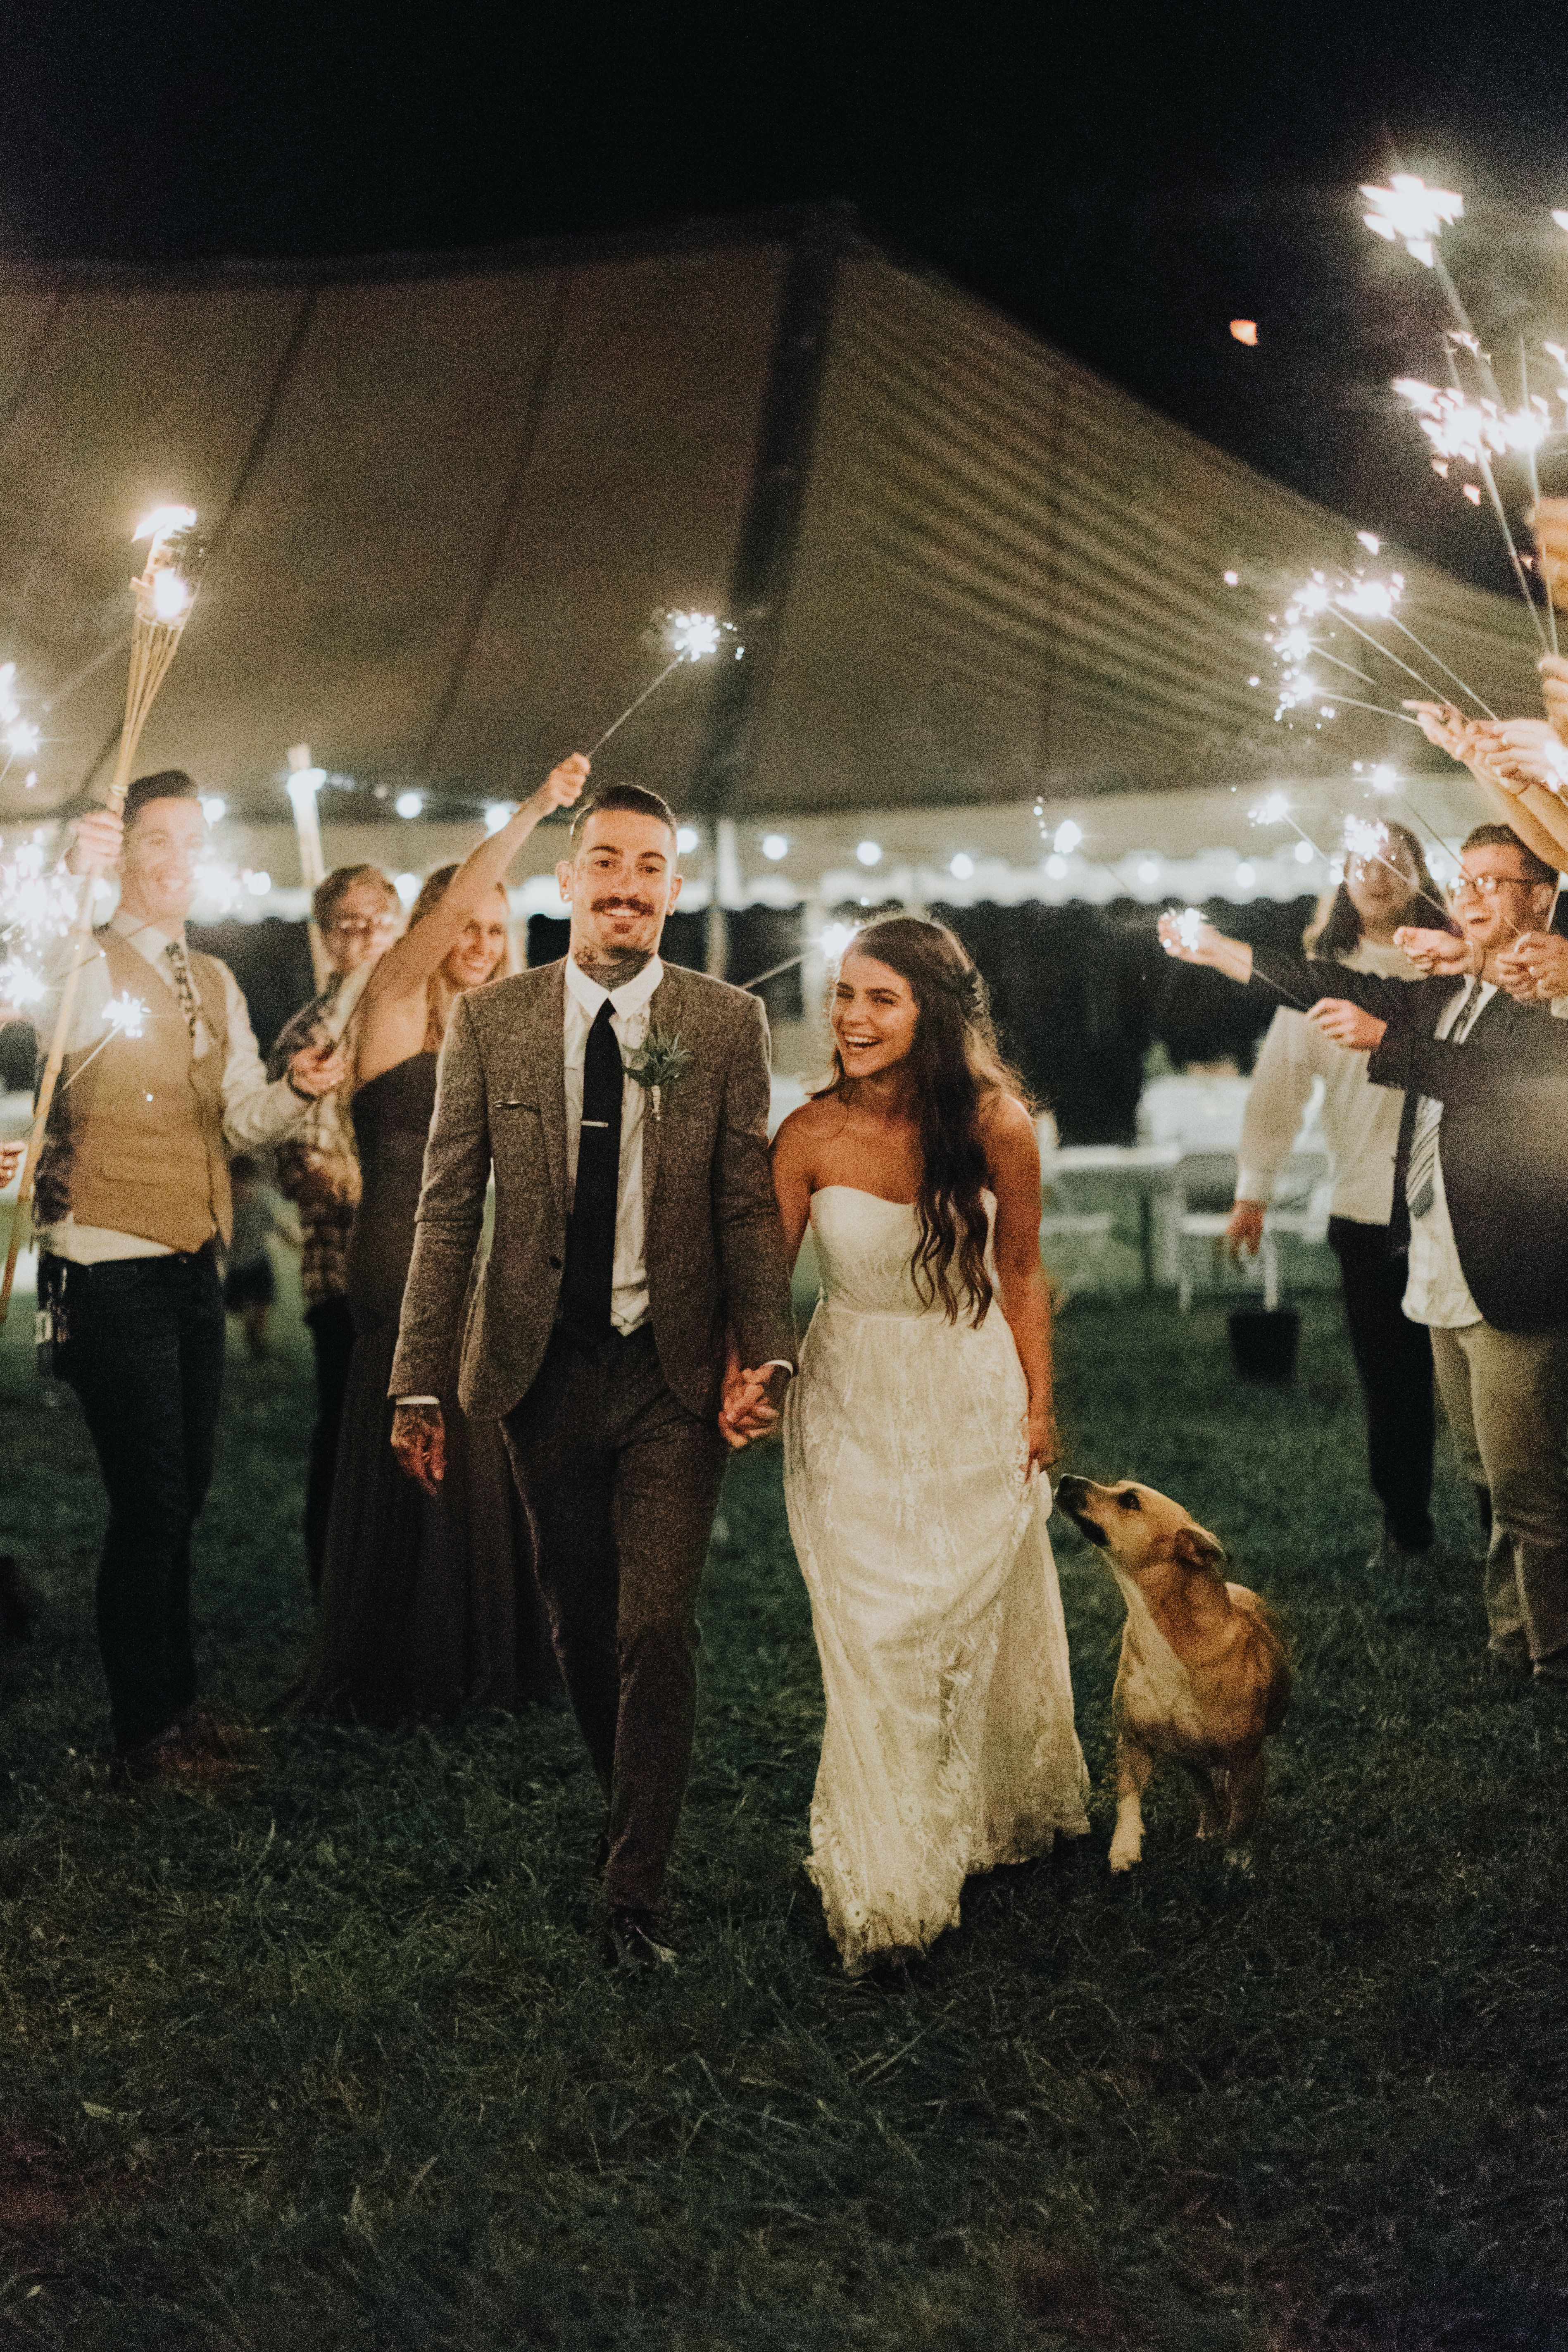 Sparkler Exit Ideas Backyardwedding Sparklerexit Backyard